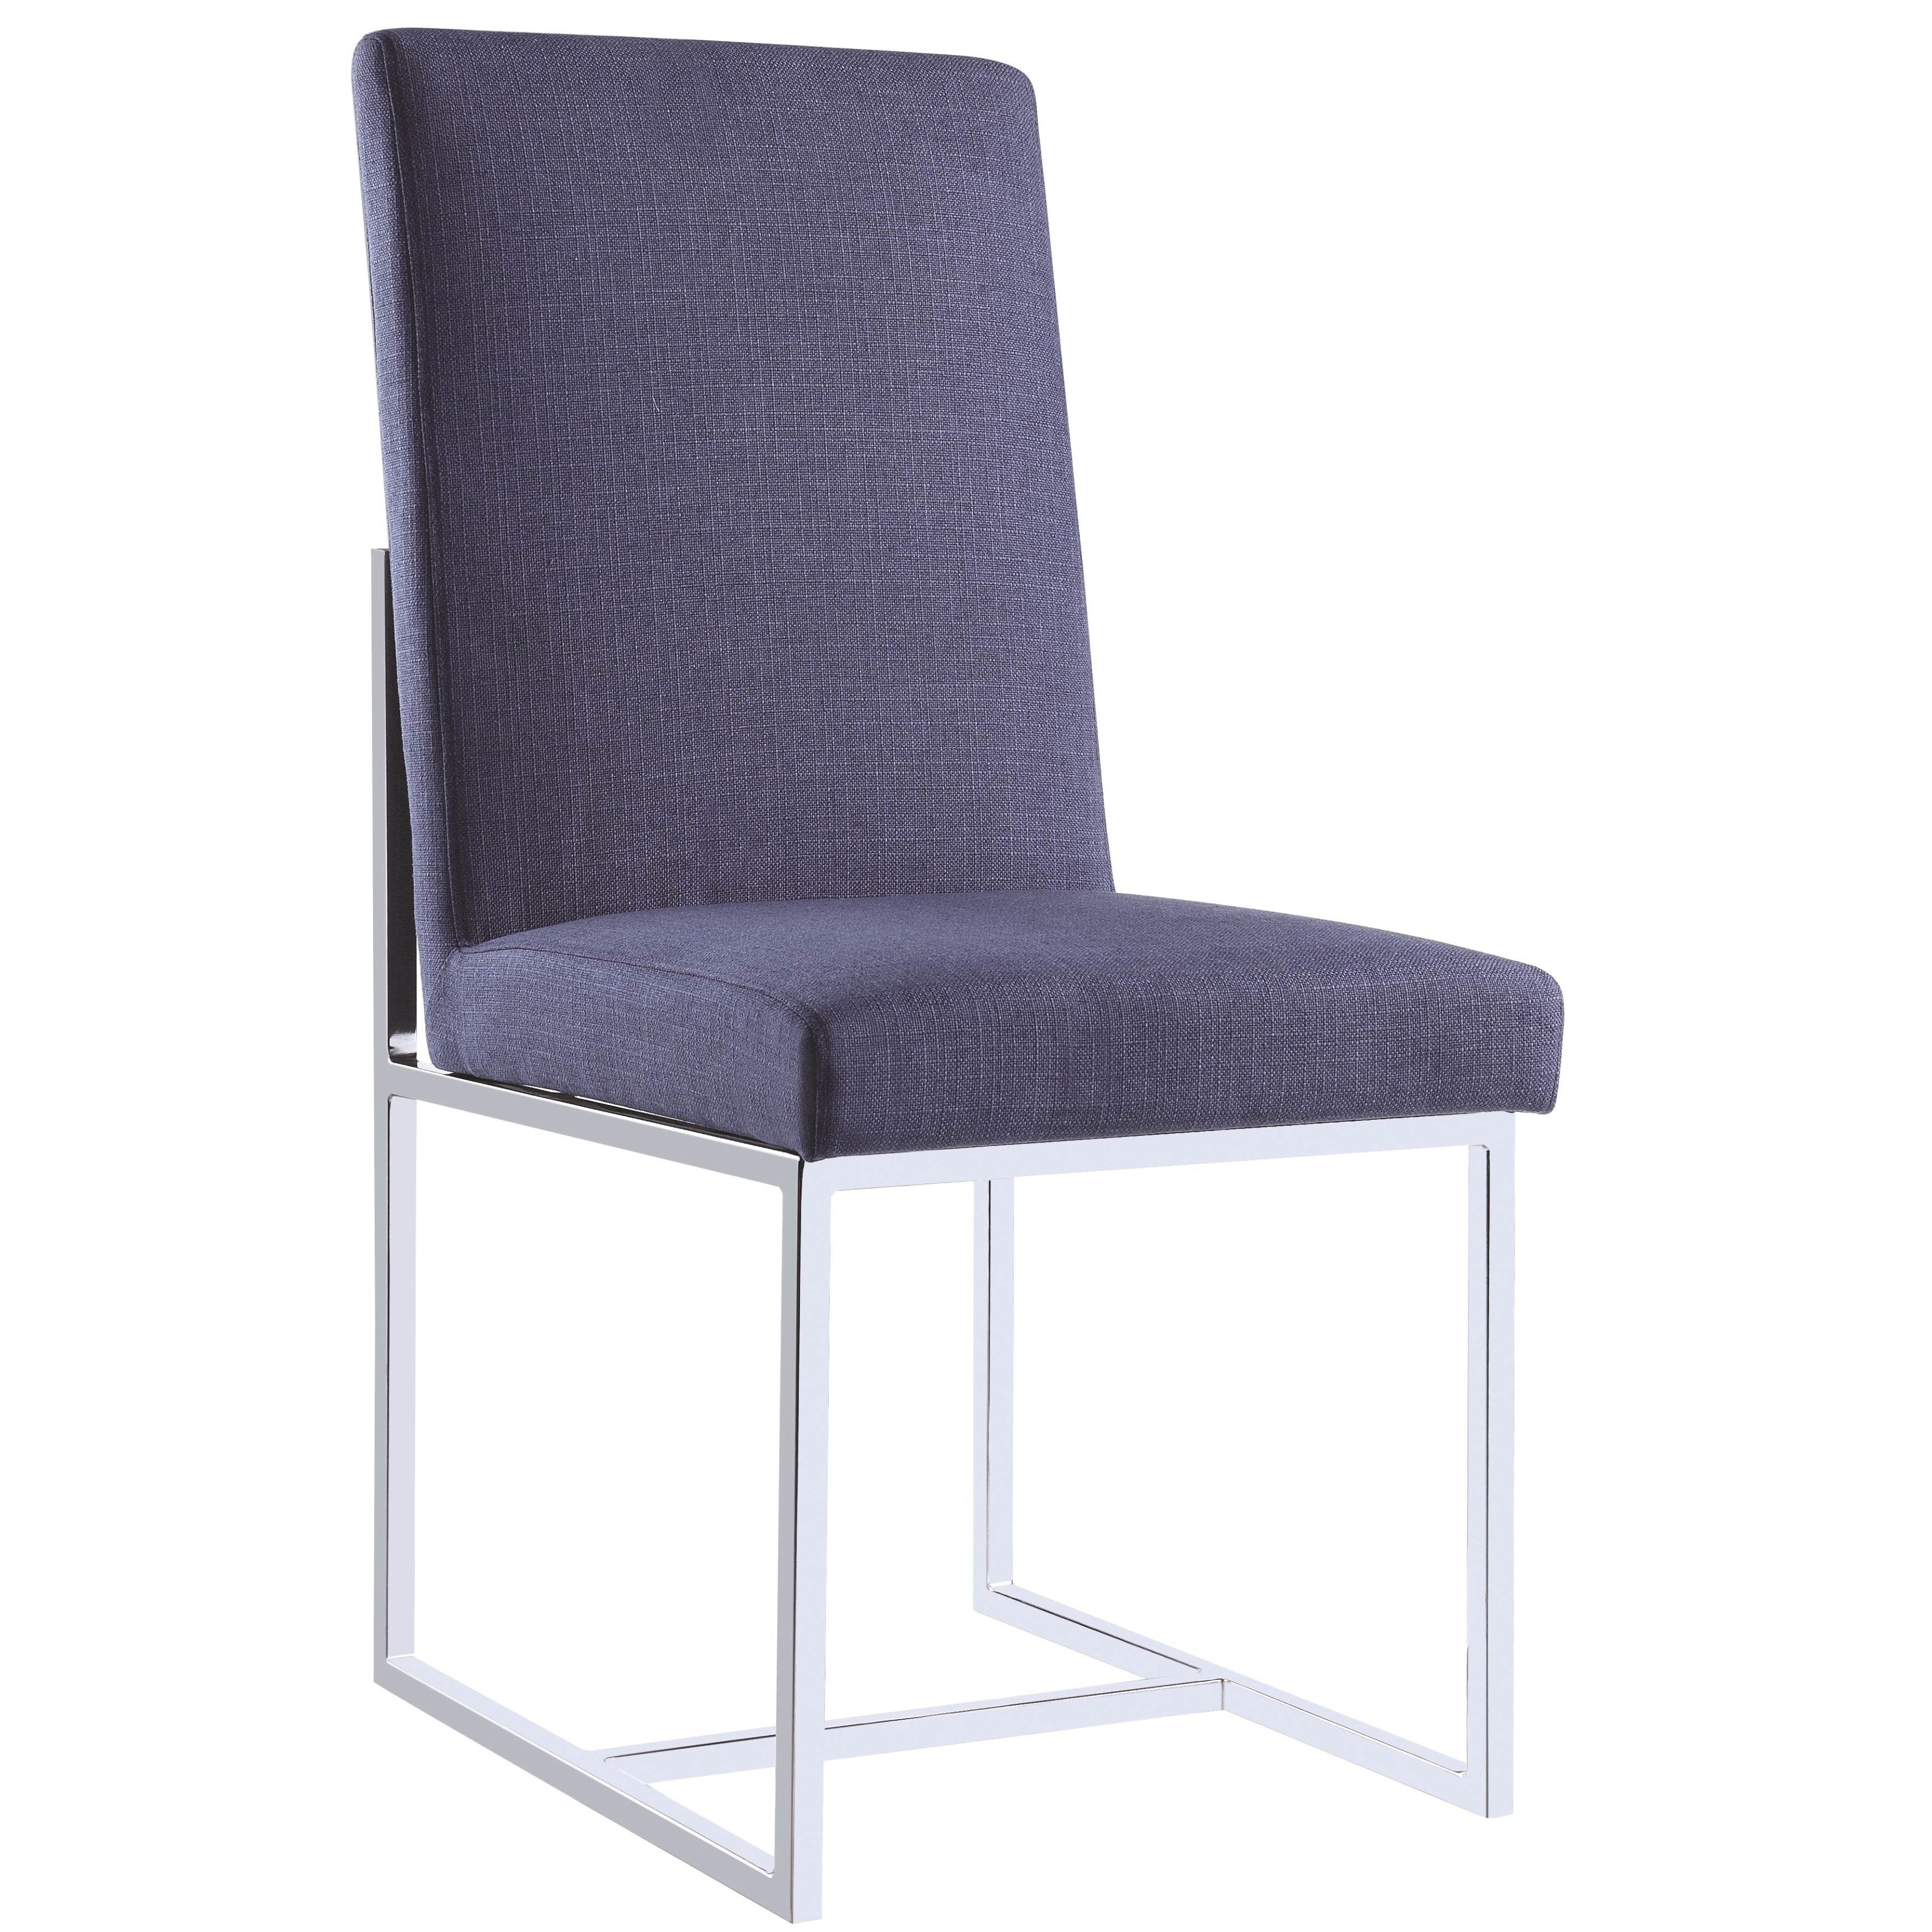 Shop modern floating design blue dining chairs set of 2 free shipping today overstock com 15616610